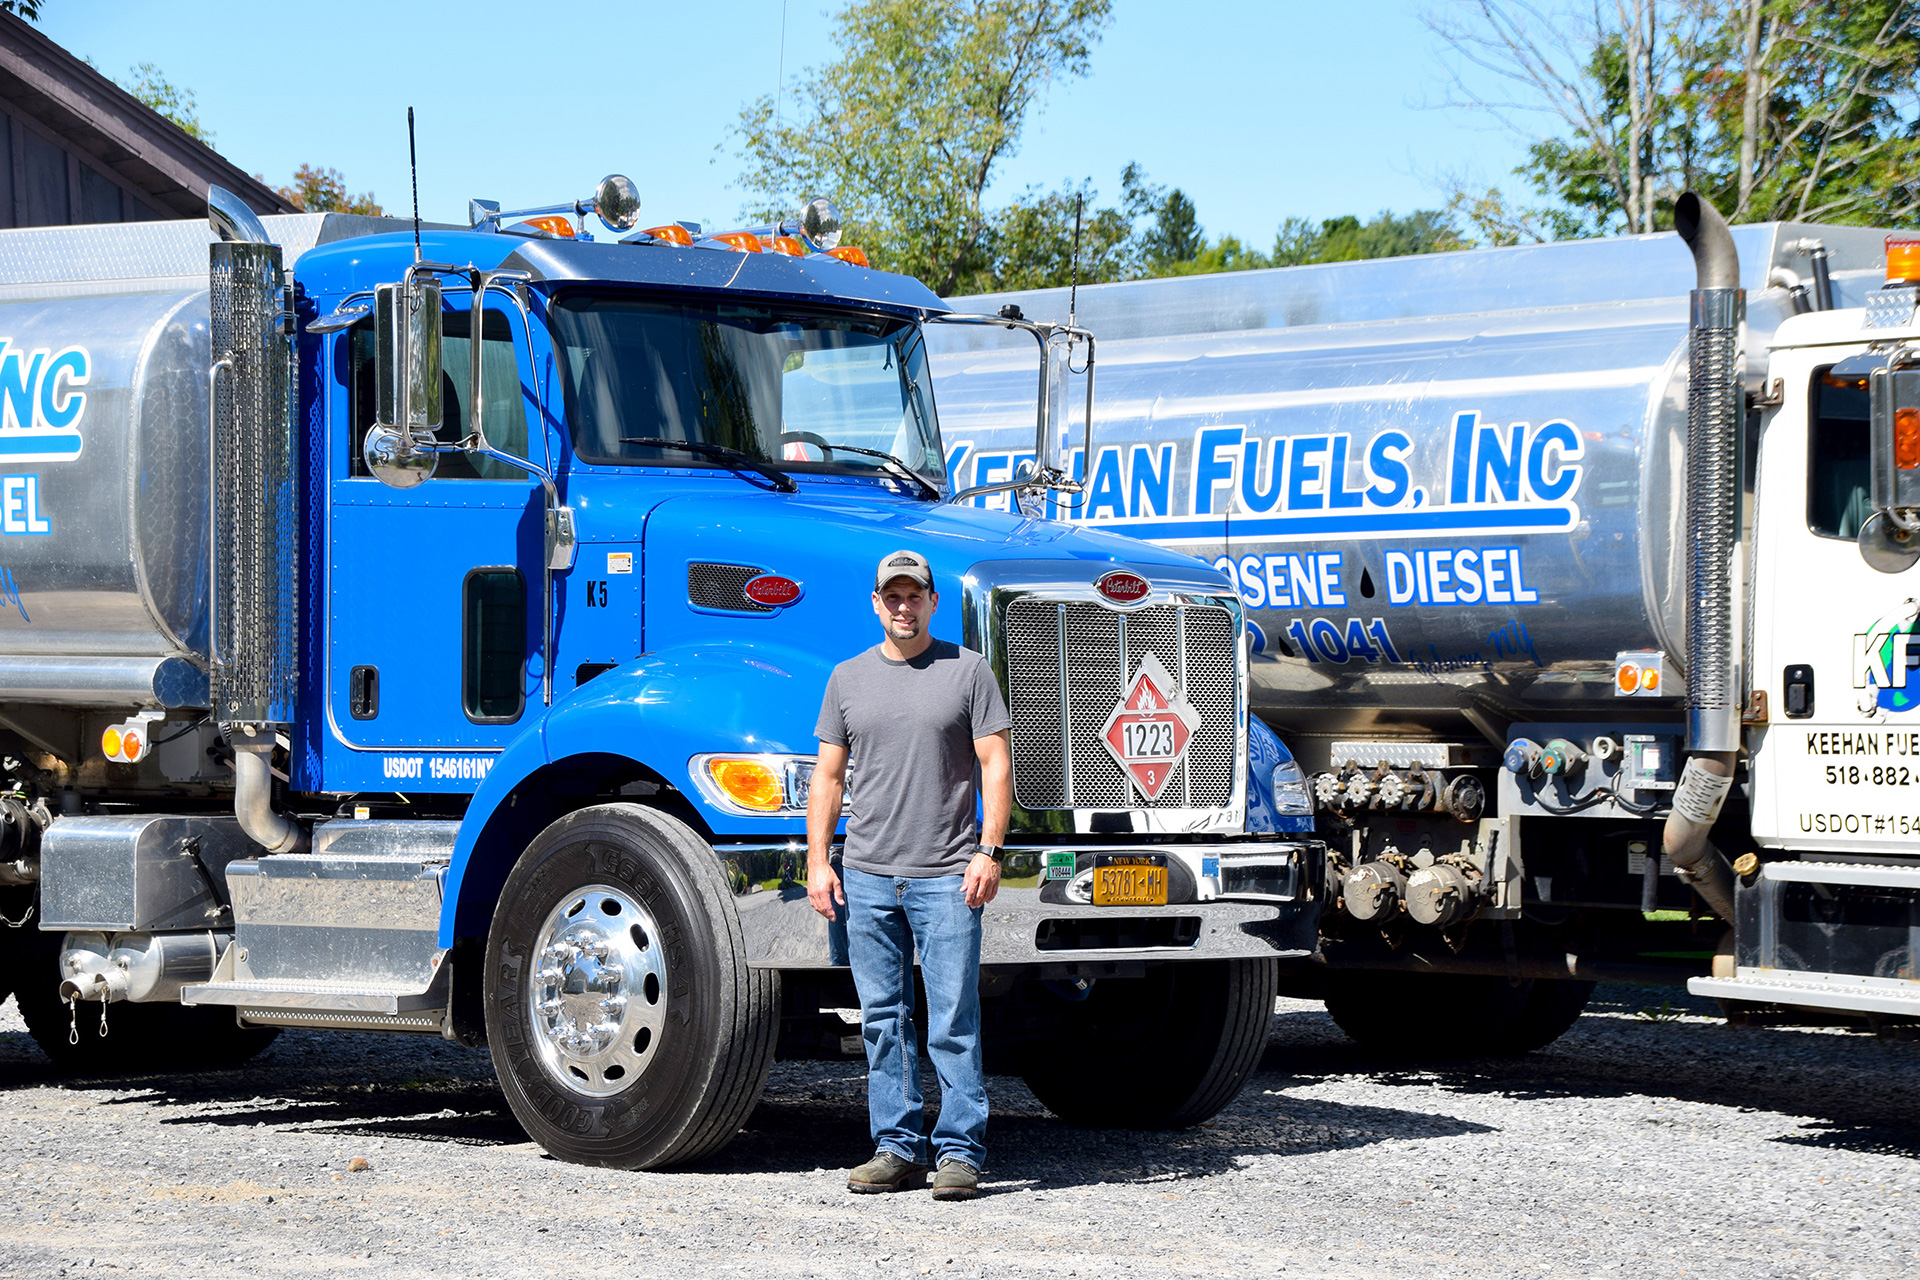 Keehan Fuels, Inc. :: Now offering Propane Delivery in Galway, New York